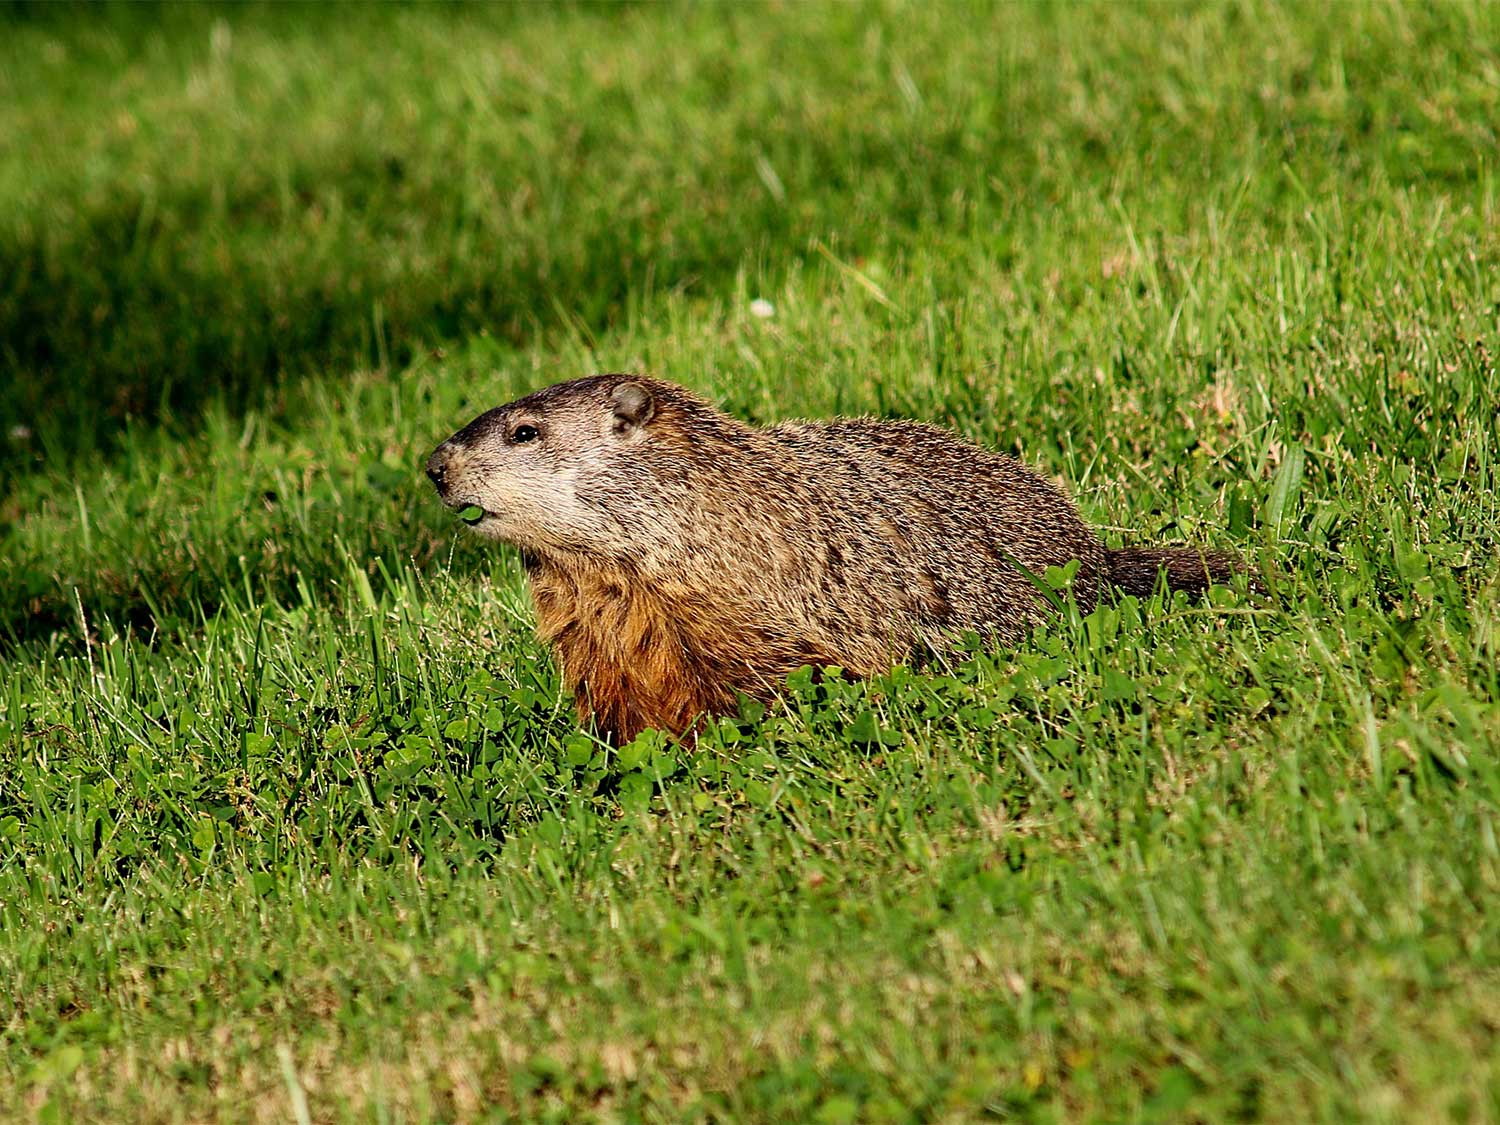 A groundhog walking through a field of grass.